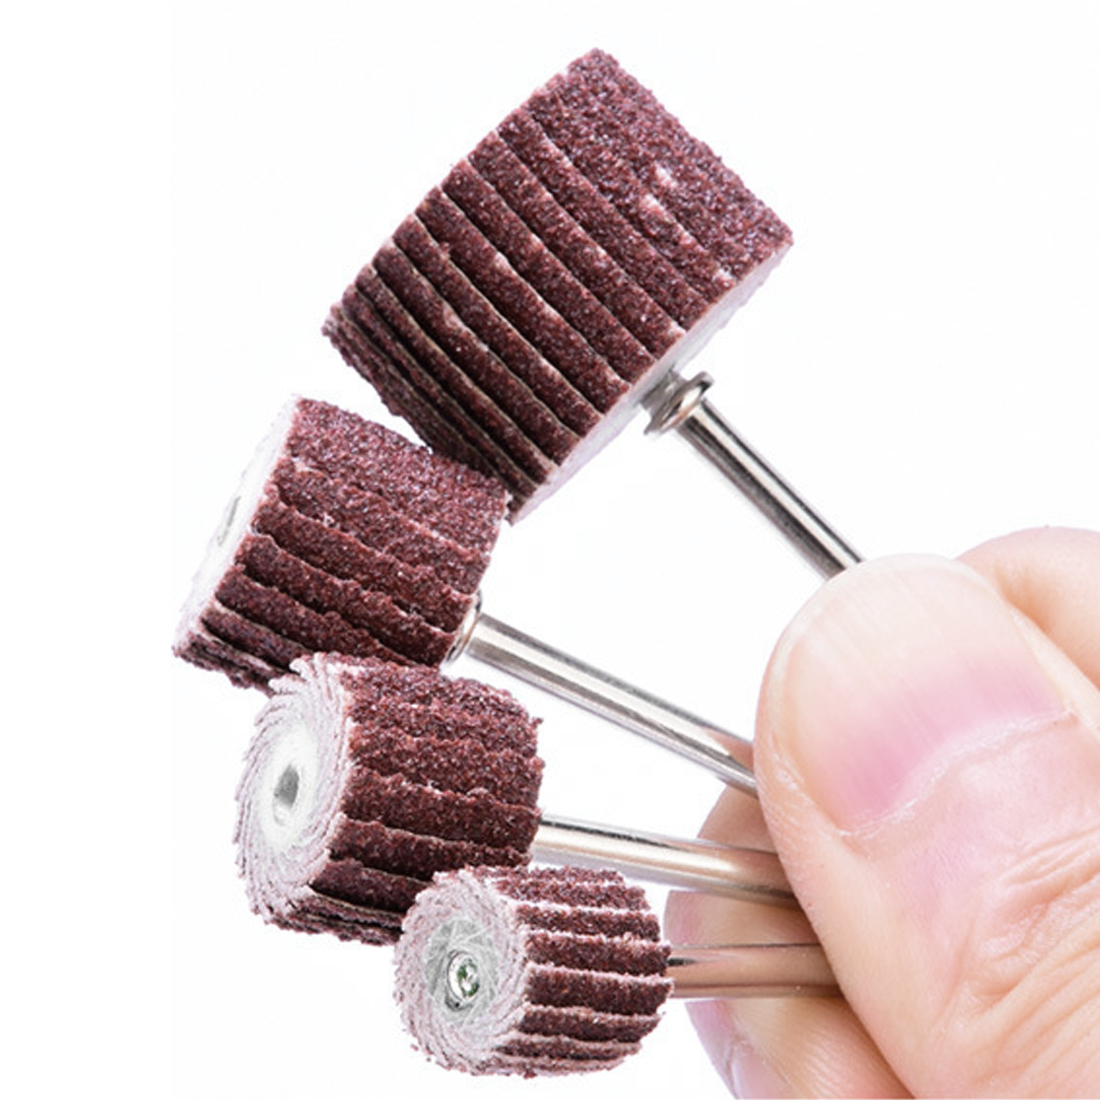 10pcs+1 10-12mm Sanding Flap Disc Grinding Flap Wheels Brush Sand Dremel Accessories For Abrasive Grinder Rotary Dremel Tools